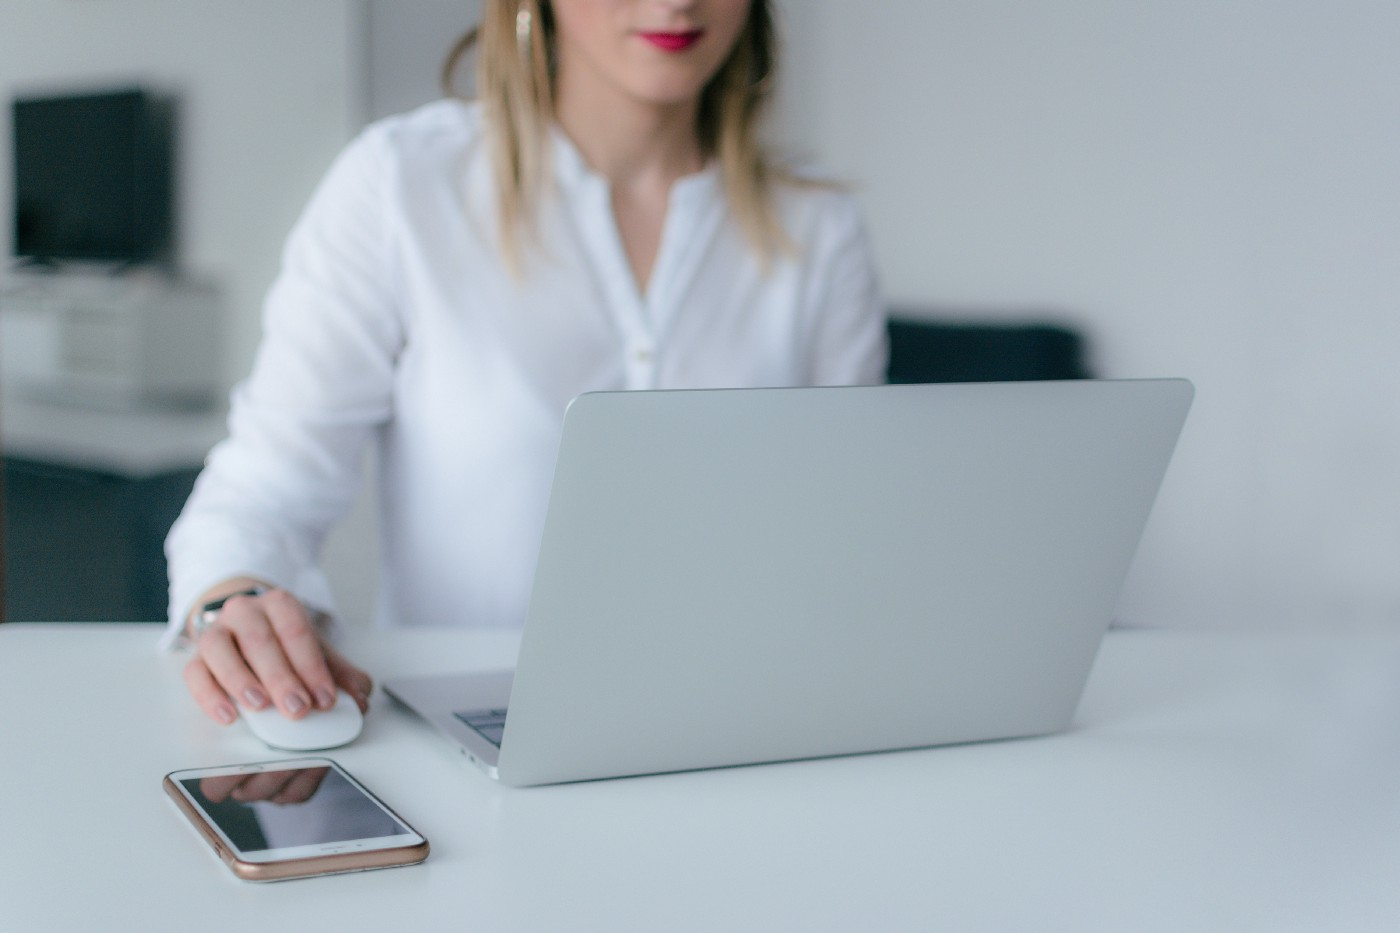 Woman siting in front of a laptop with her hand on the mouse.